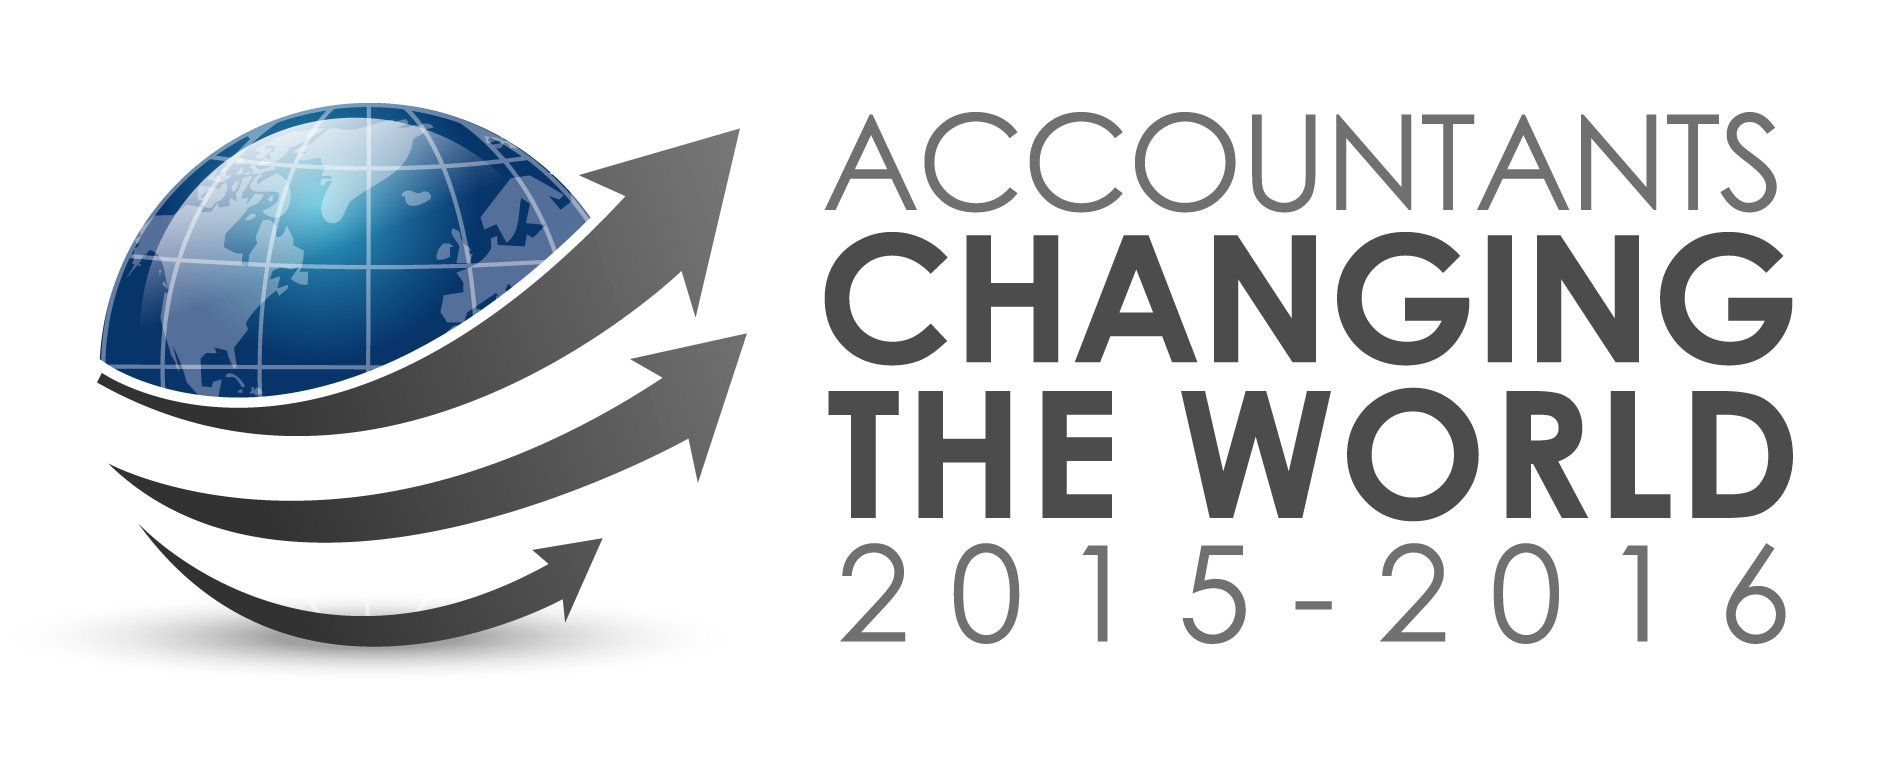 Accountants Changing the World - B1G1